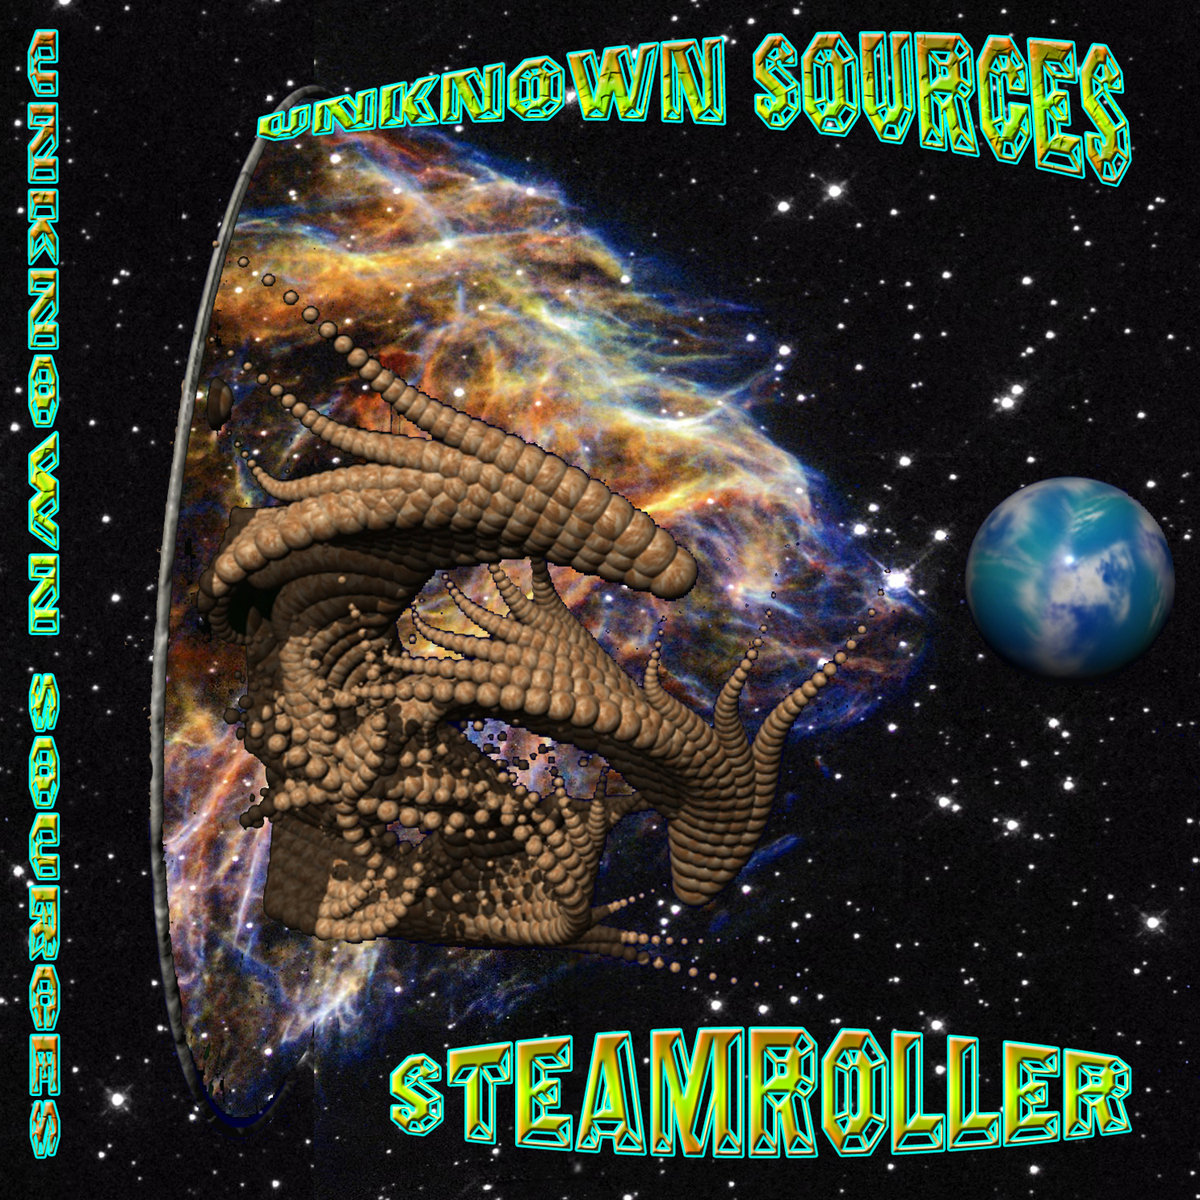 Unknown Sources - Steamroller @ 'Steamroller' album (electronic, goa)